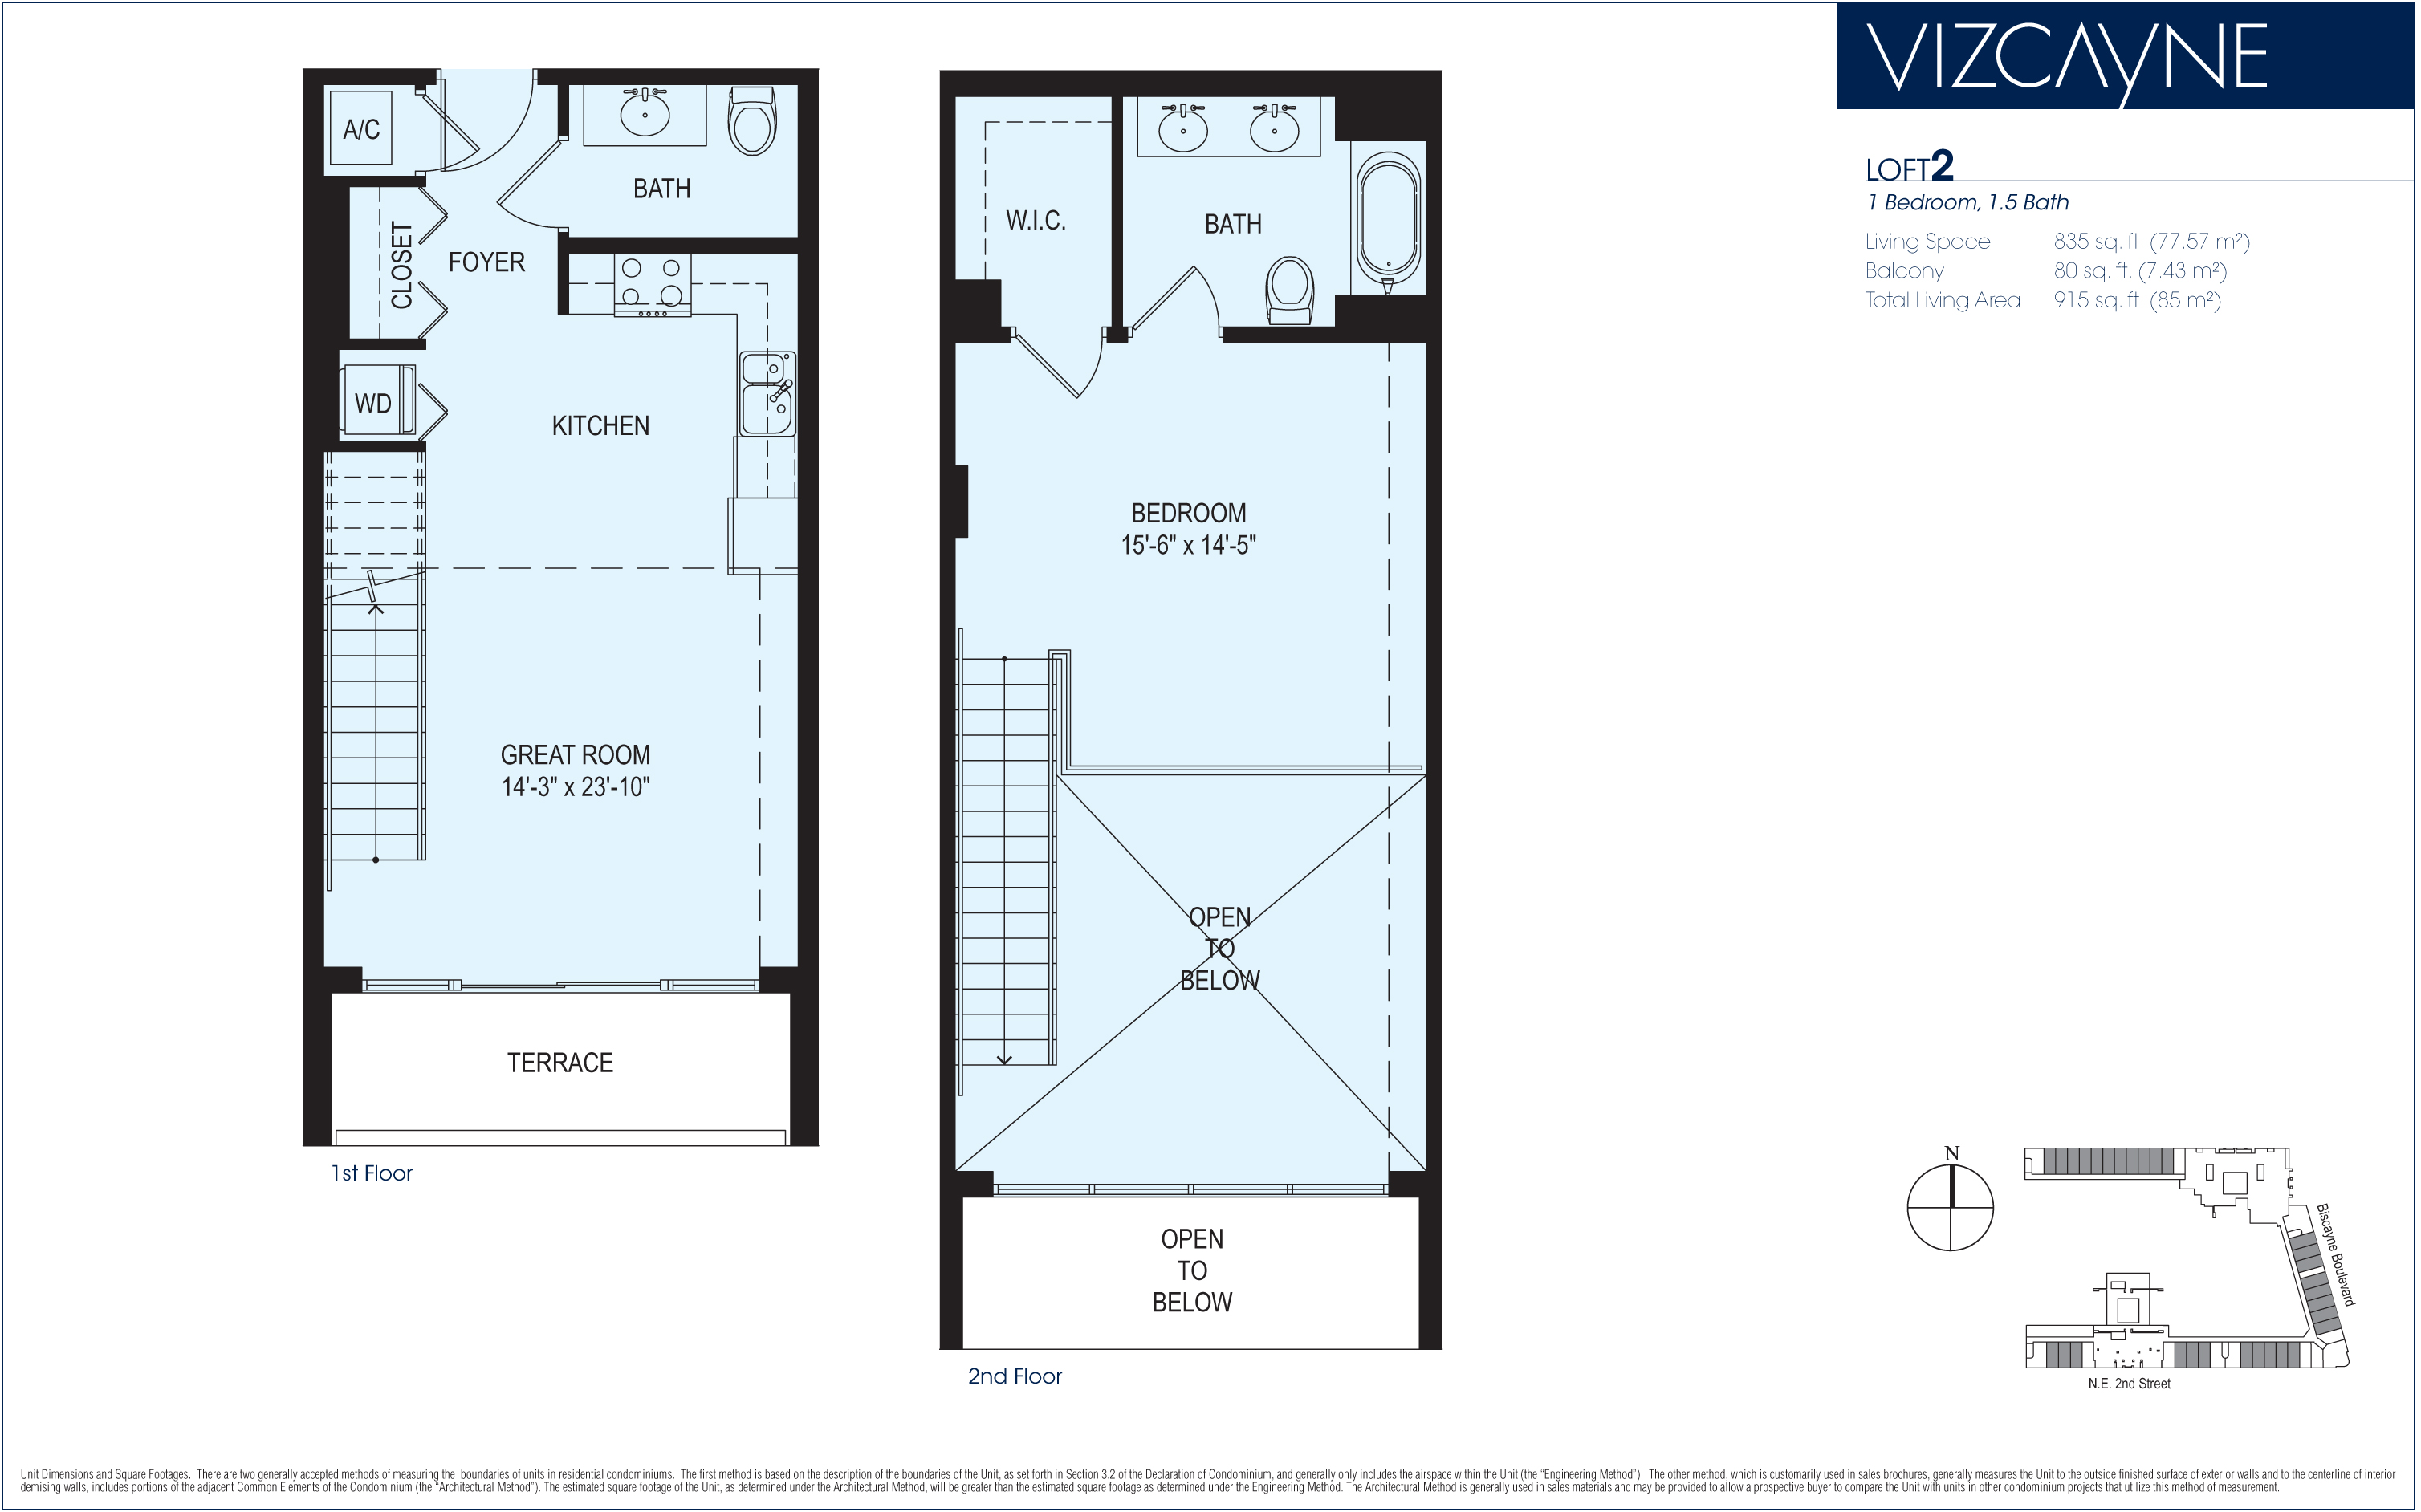 Vizcayne Tower Floorplans Miami